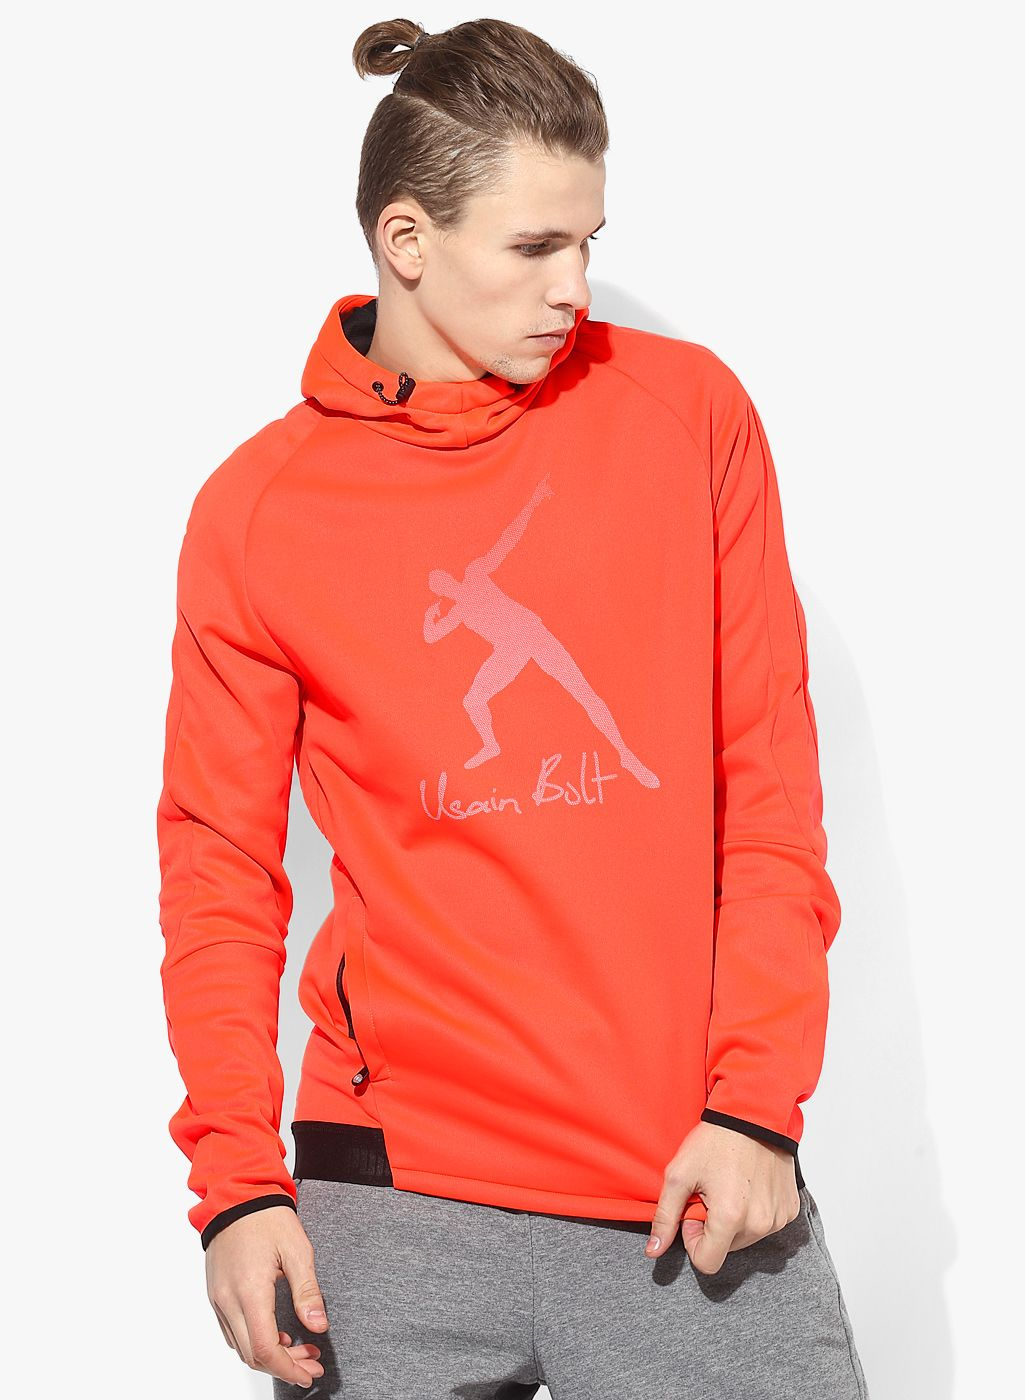 80e15ca5 Buy Puma Ub Evostripe Logo Orange Hoodie for Men Online India, Best Prices,  Reviews | PU102MA01LECINDFAS